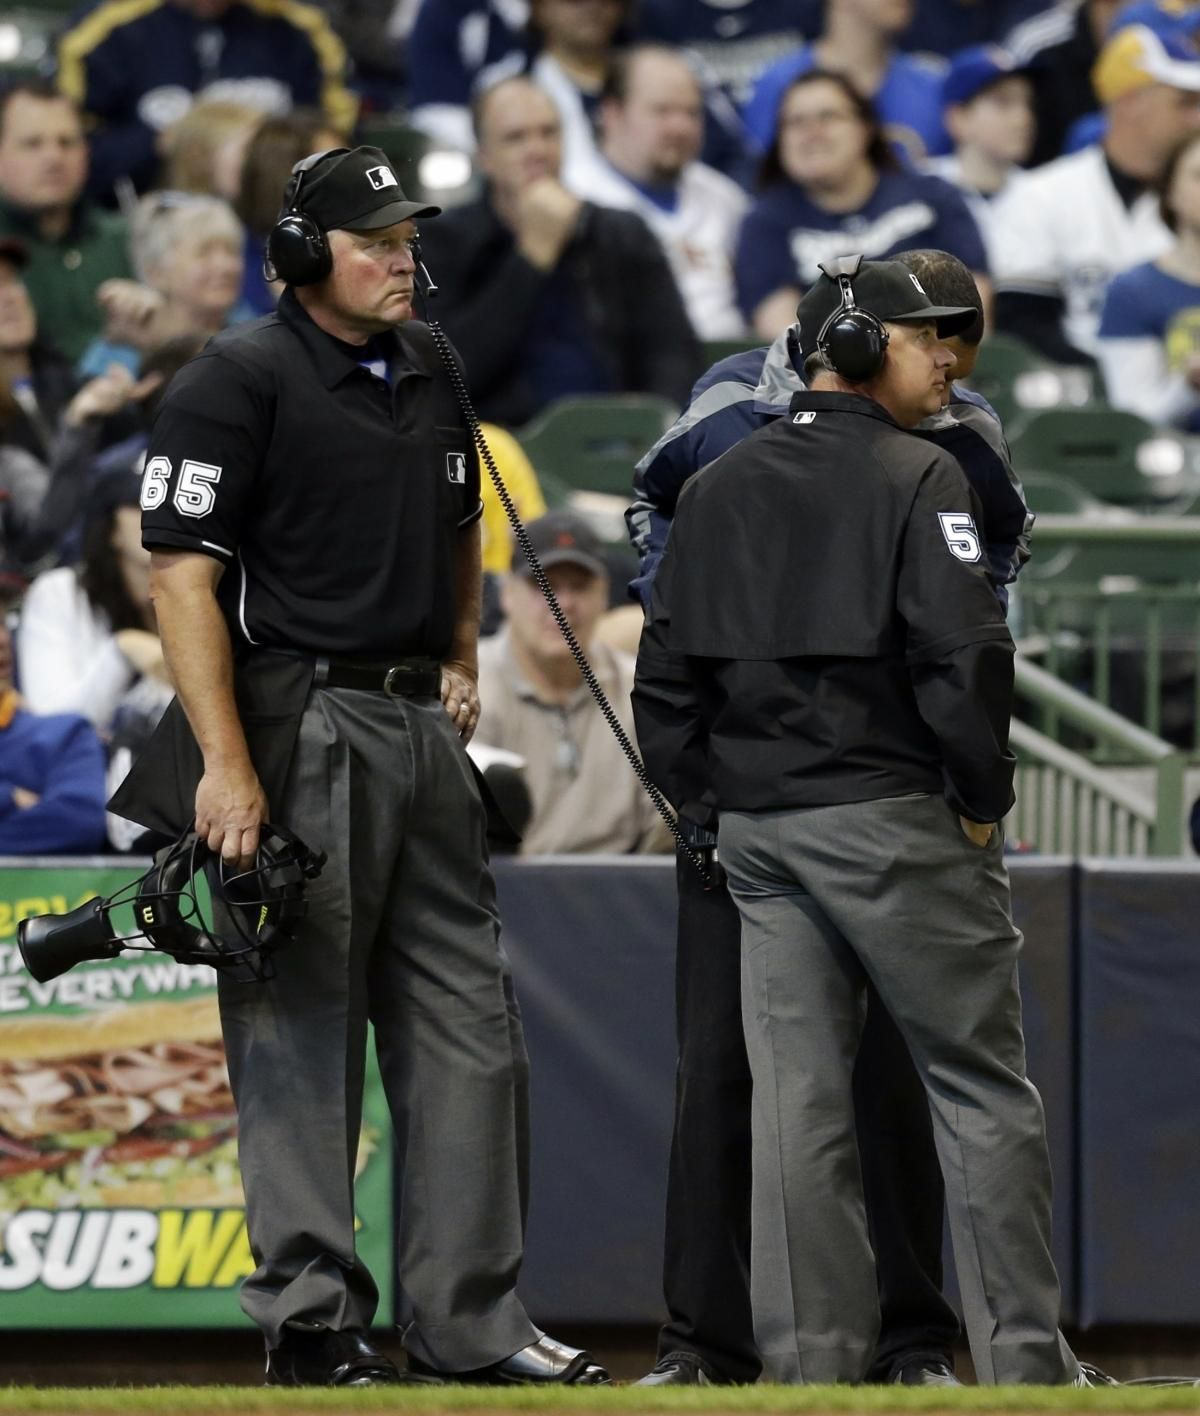 Mlb Umpire S Call Overturned For First Time Using Expanded Instant Replay Opening Day Baseball High School Baseball Replay